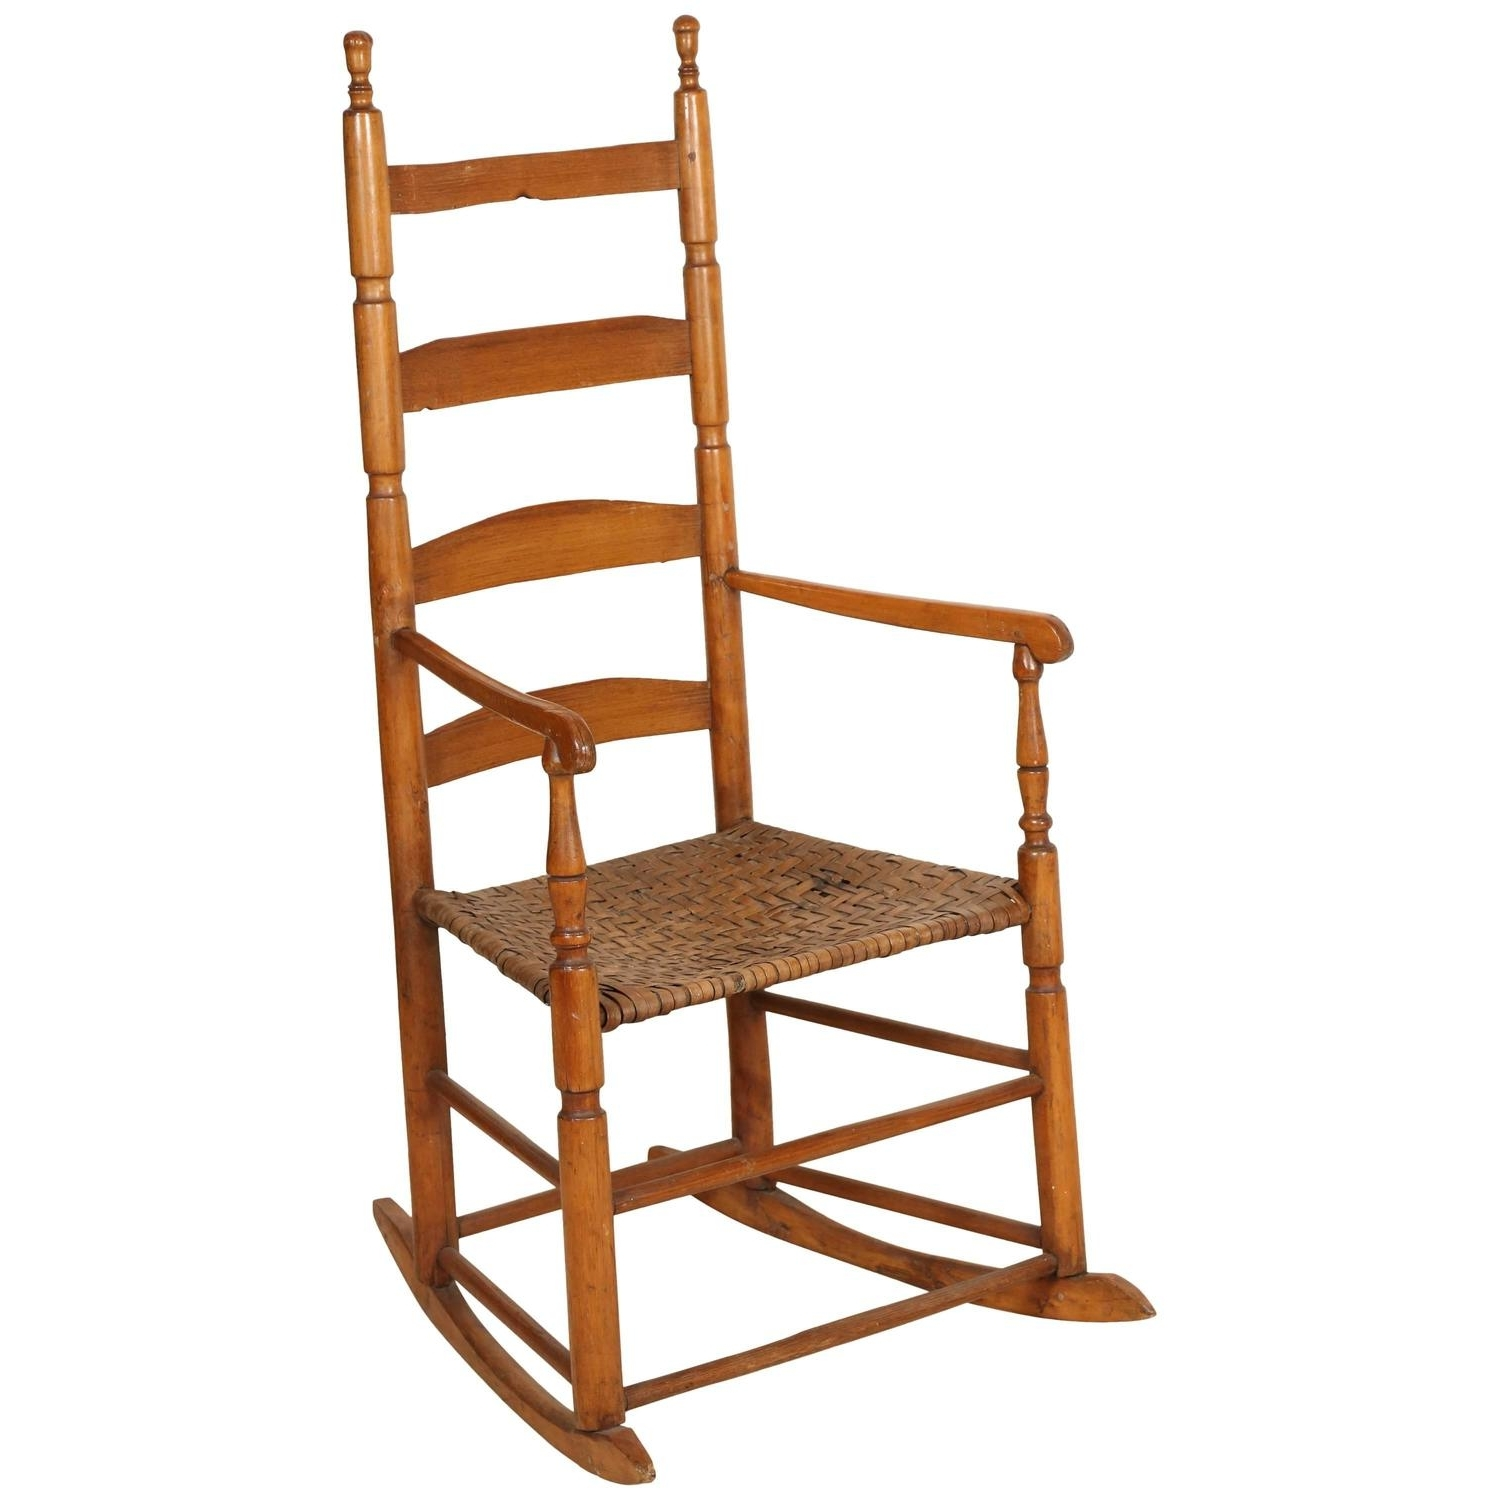 Ladder High Back Rocking Chair For Sale At 1stdibs Within Well Known High Back Rocking Chairs (View 4 of 15)